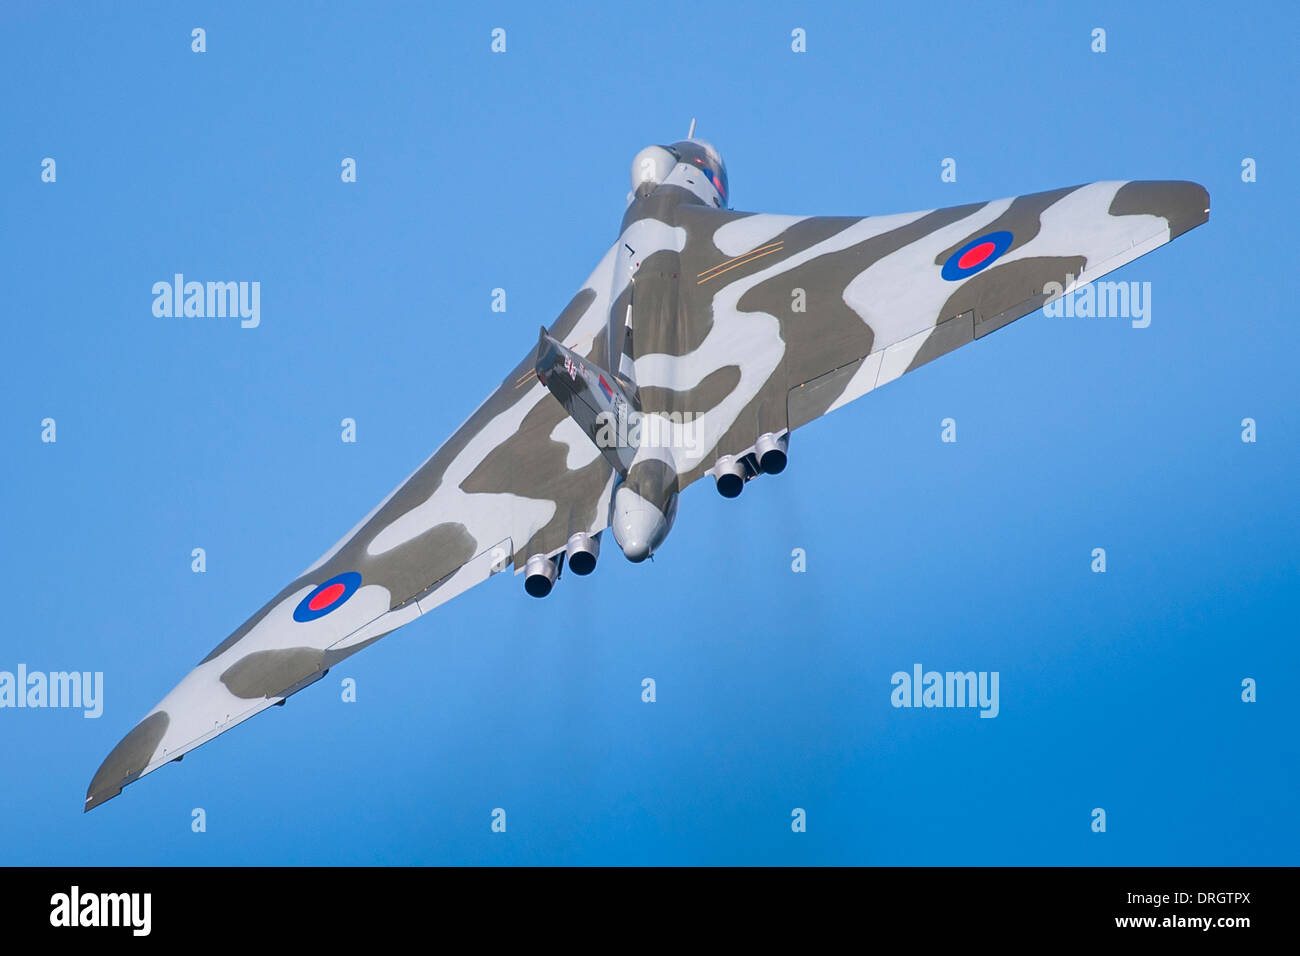 Avro Vulcan B. 2 Delta Wing Subsonic V- Bomber XH558 G-VLCN, Wings & Wheels, Dunsfold UK 2013 - Stock Image